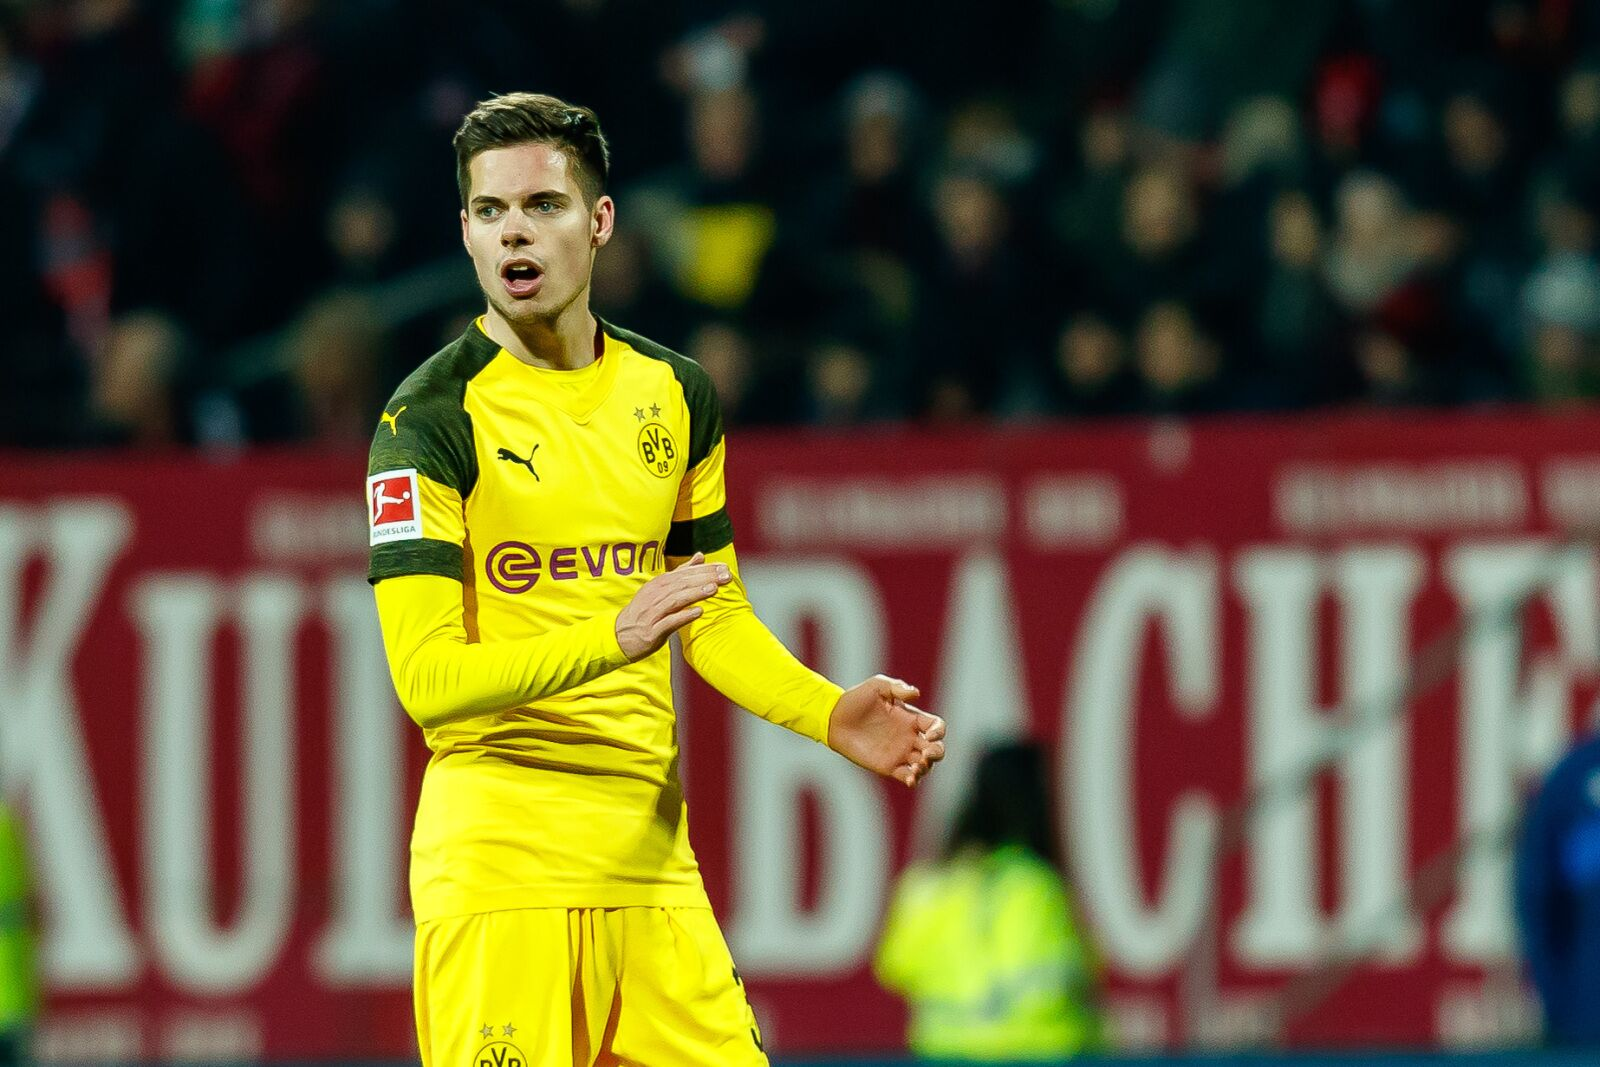 Borussia Dortmund transfer rumor roundup: Price tag set for Weigl, U19 striker joins Nuremberg, Dembele linked with Bayern